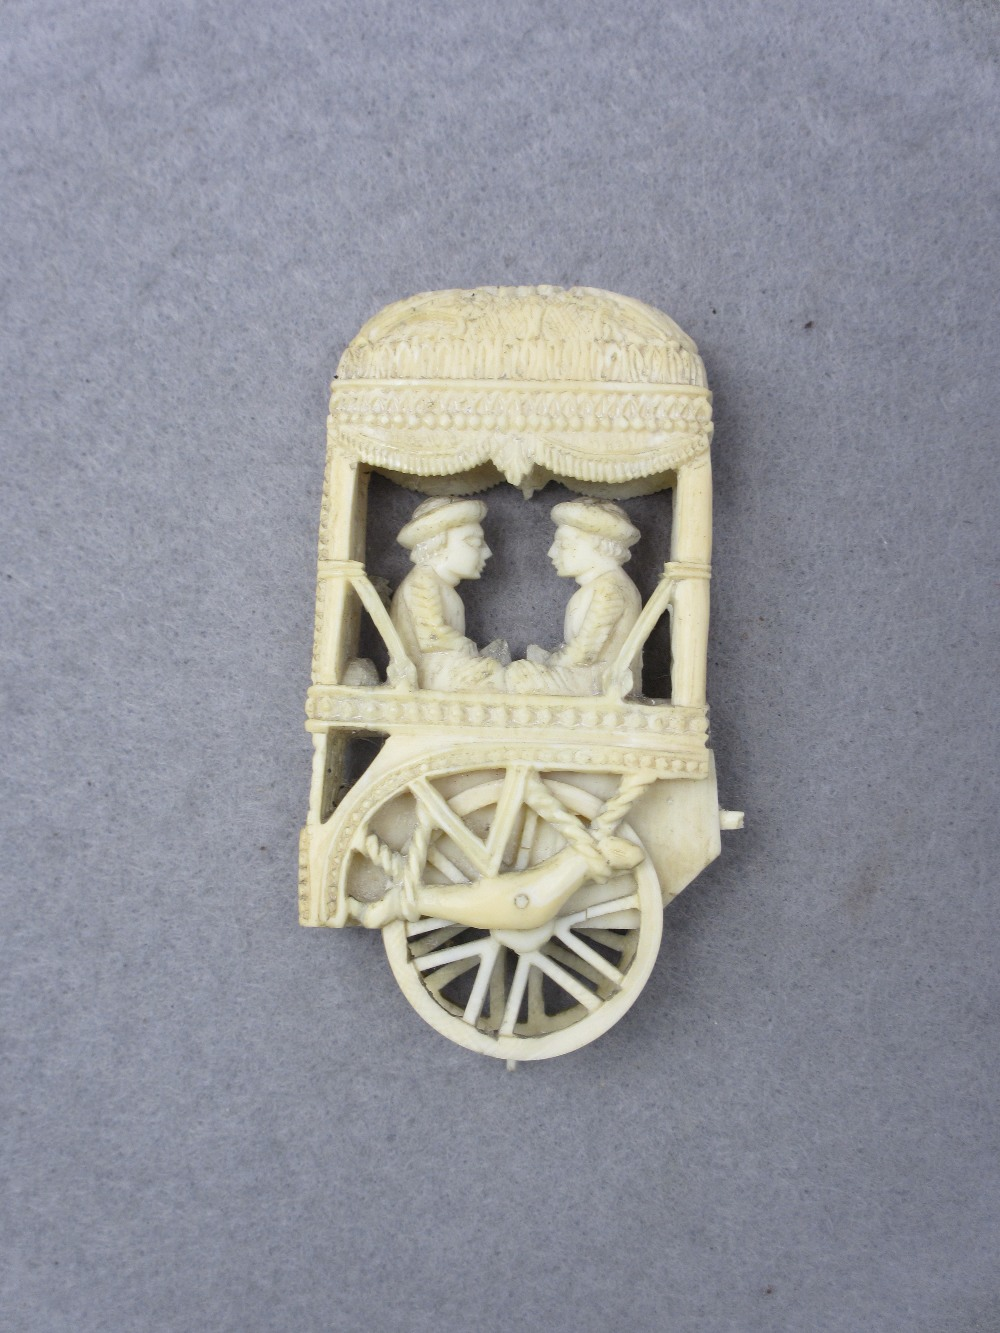 LATE 19TH/EARLY 20TH CENTURY ANGLO INDIAN IVORY/BONE CARVINGS - an elephant with palanquin on a - Image 3 of 5